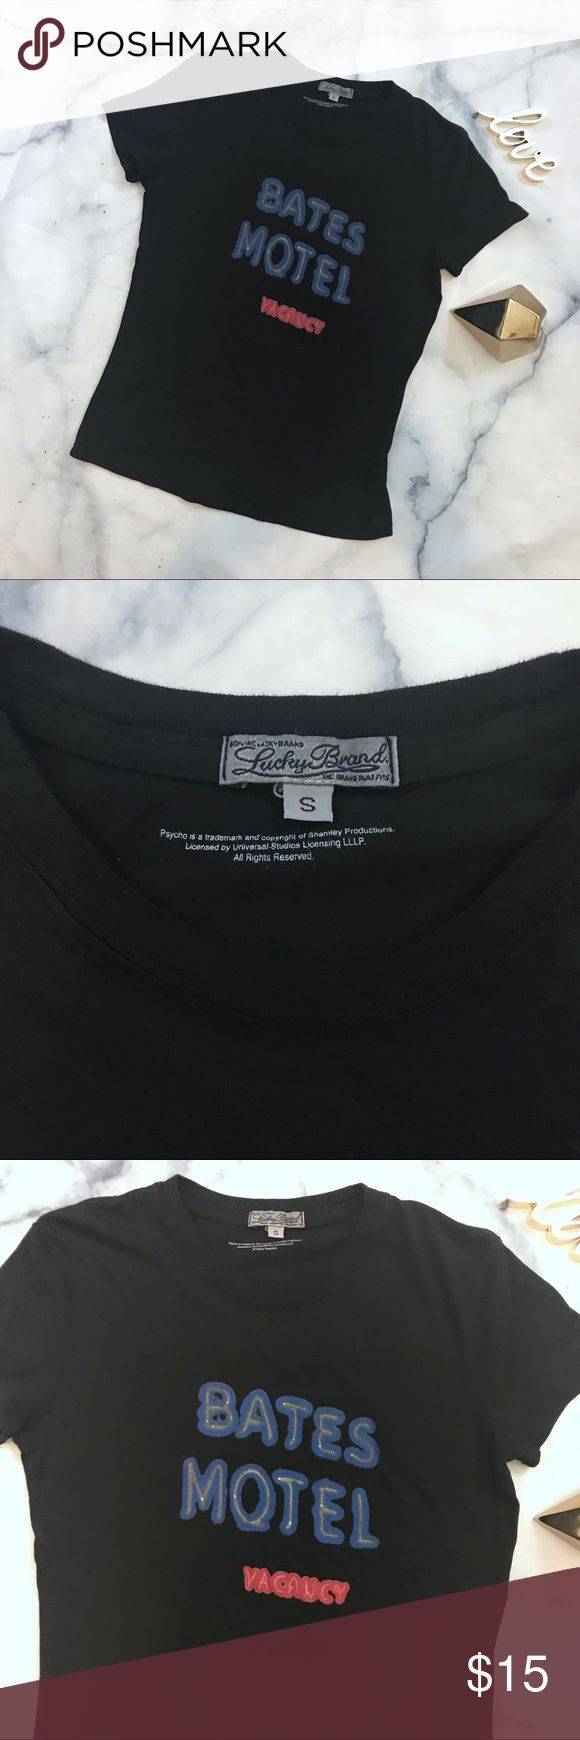 Lucky Brand Bates Motel Tee Everyday No Visible Signs Of Rips Stains Or